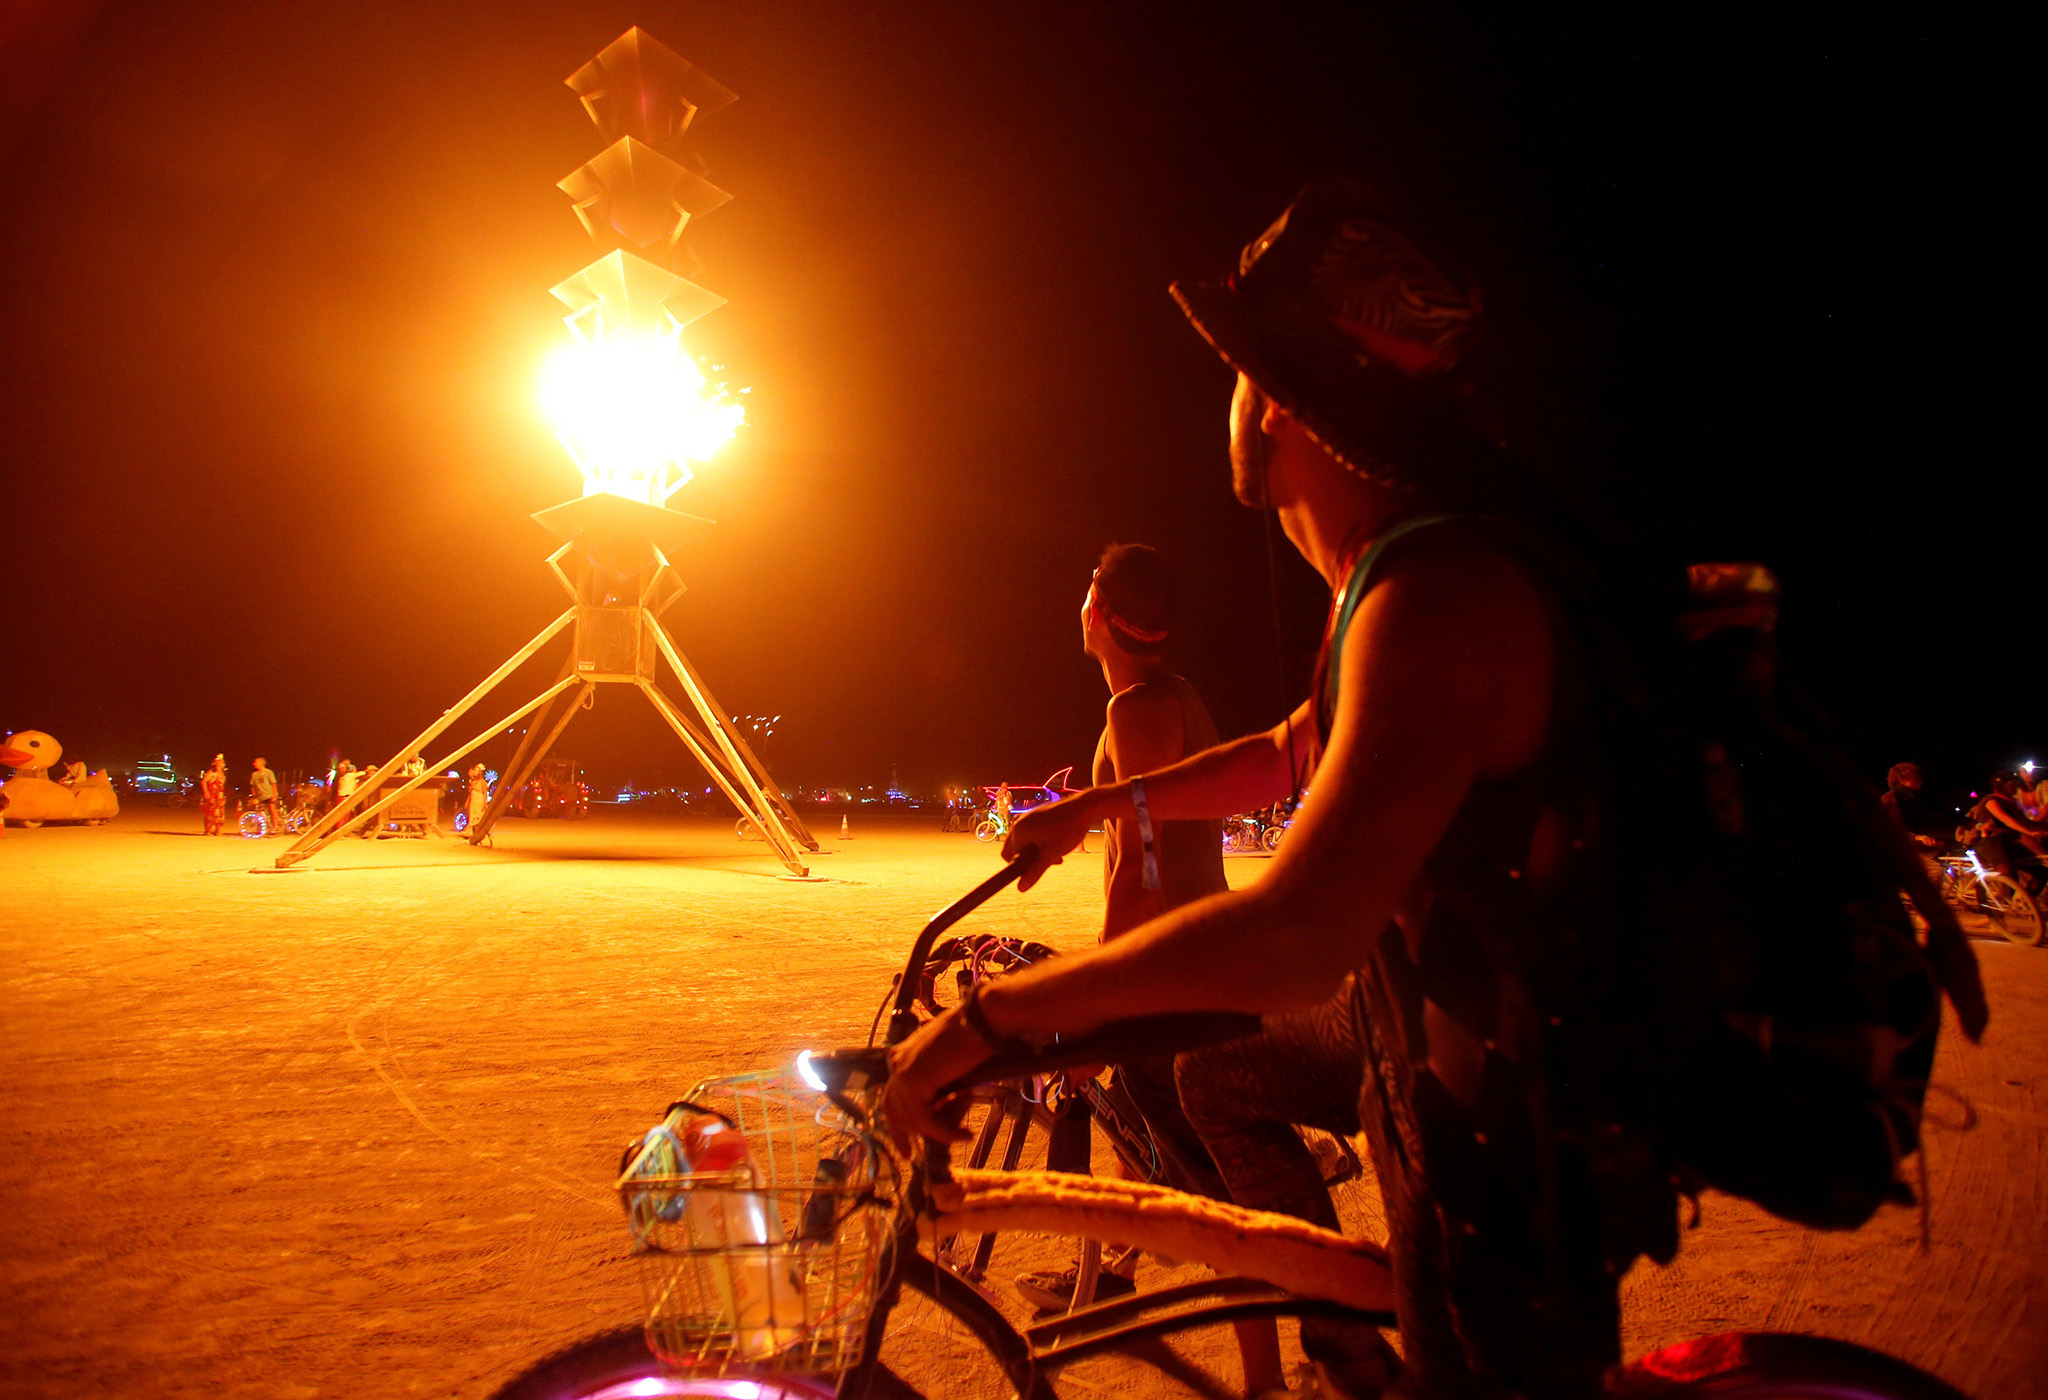 Participants watch the flames on the Spire of Fire as approximately 70,000 people from all over the world gather for the 30th annual Burning Man arts and music festival in the Black Rock Desert of Nevada